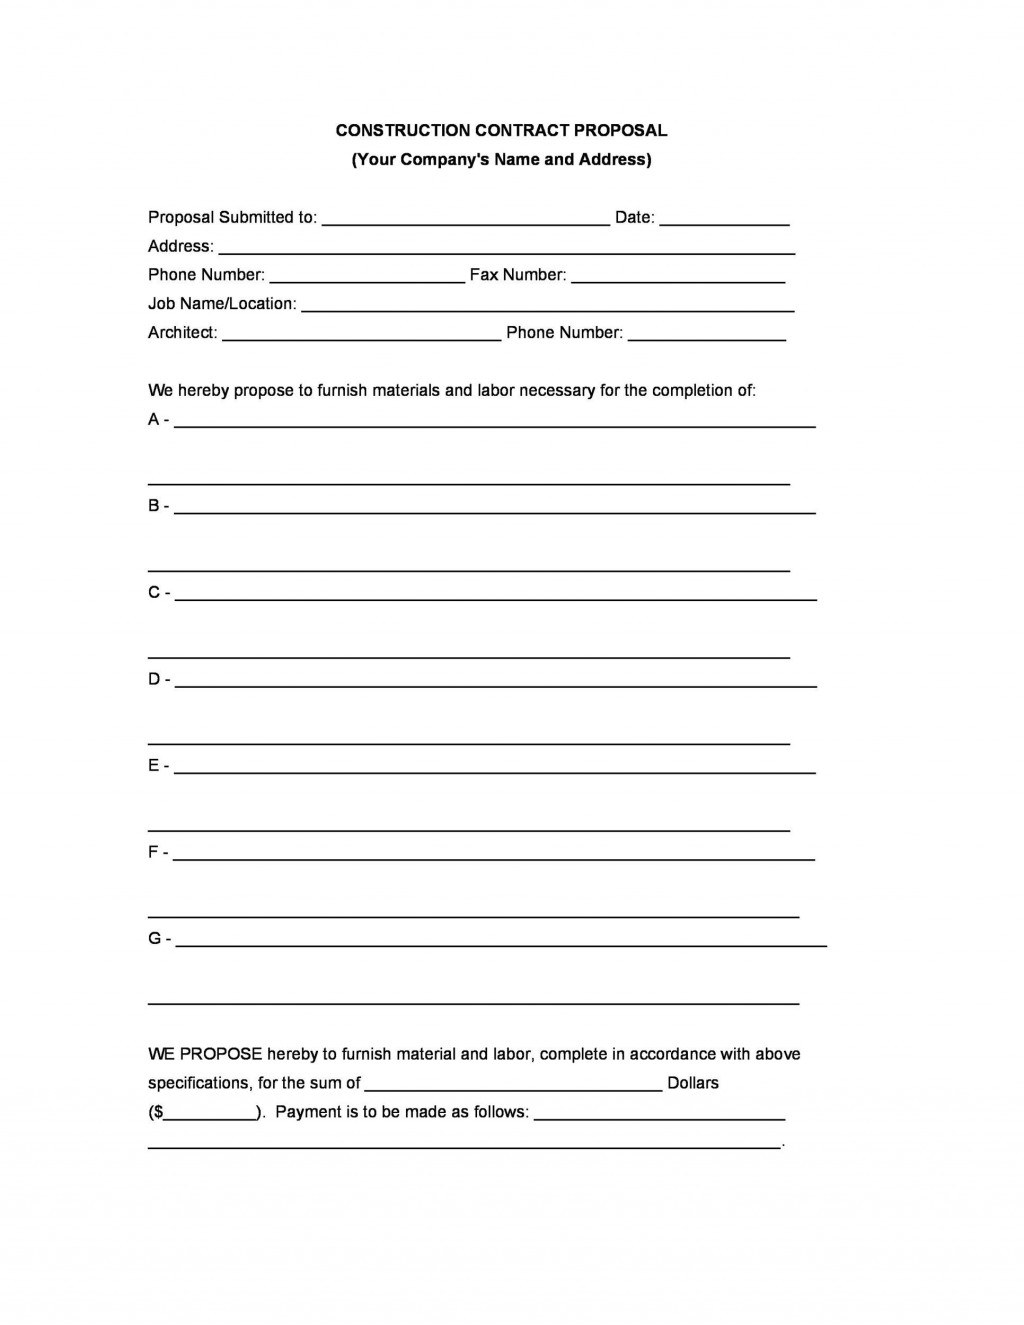 005 Exceptional Construction Busines Form Template Idea Large